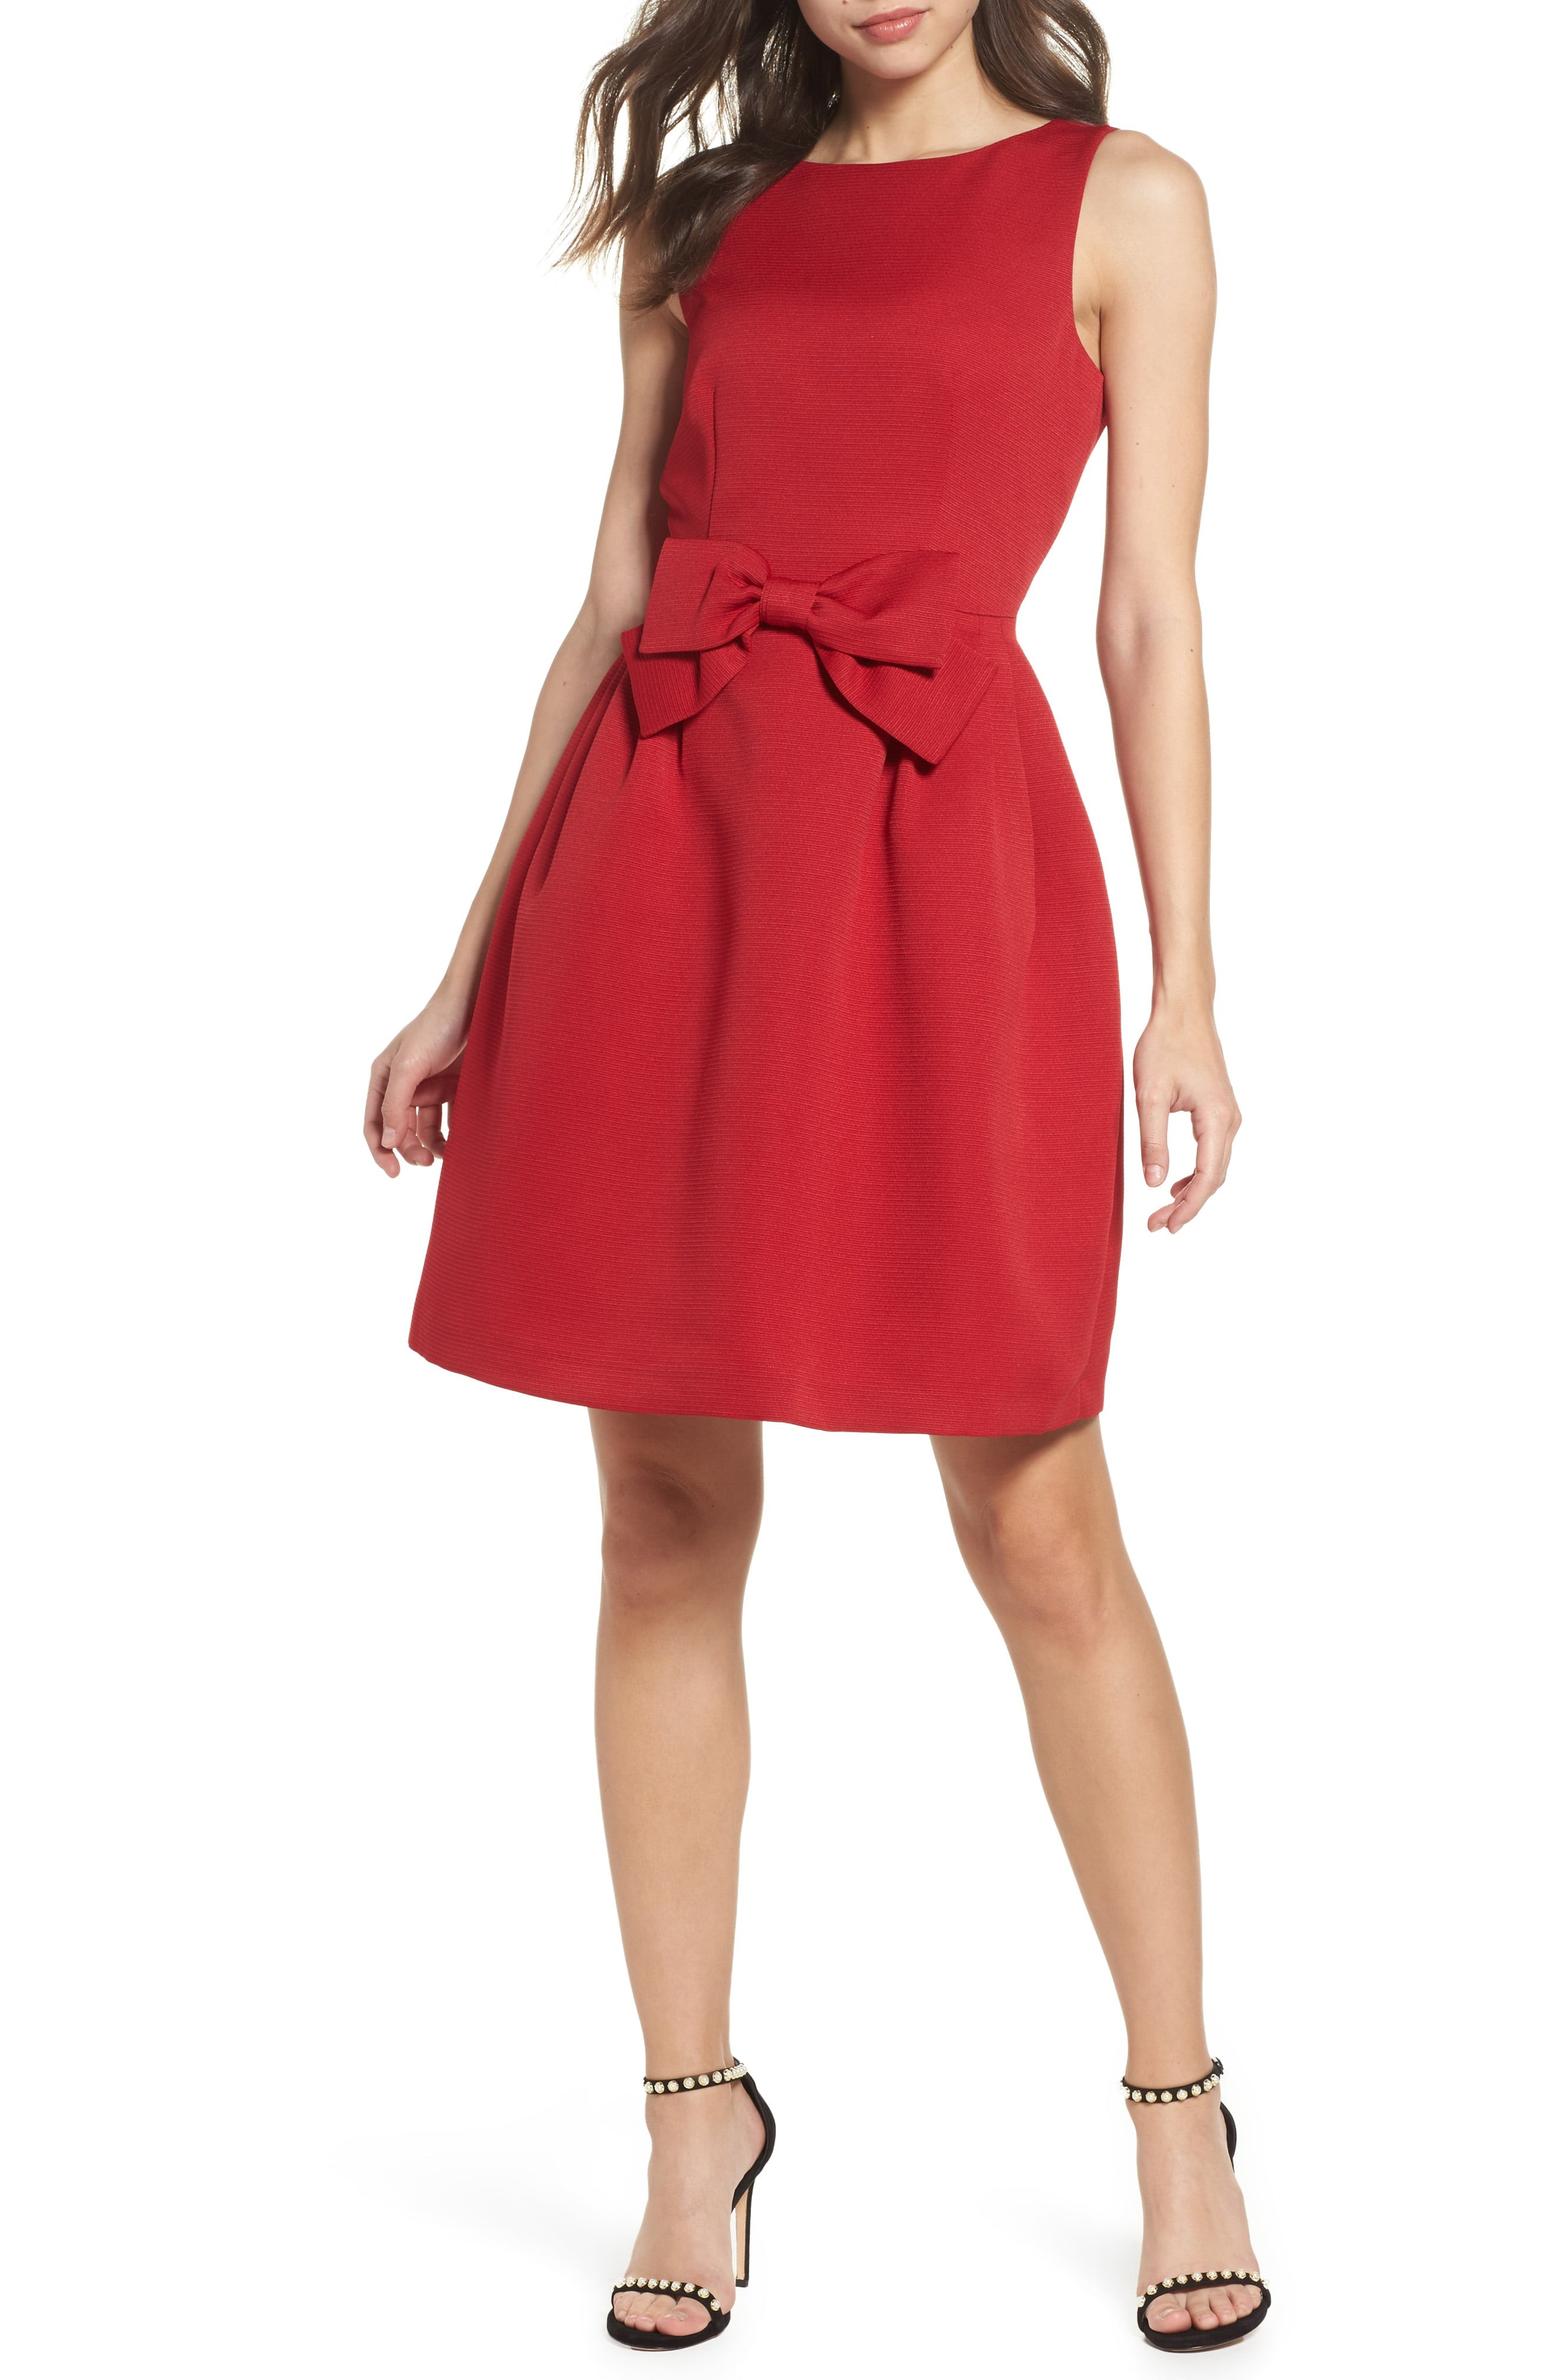 3692b4d0ff3a Holiday Party Dress Guide   Visions of Vogue